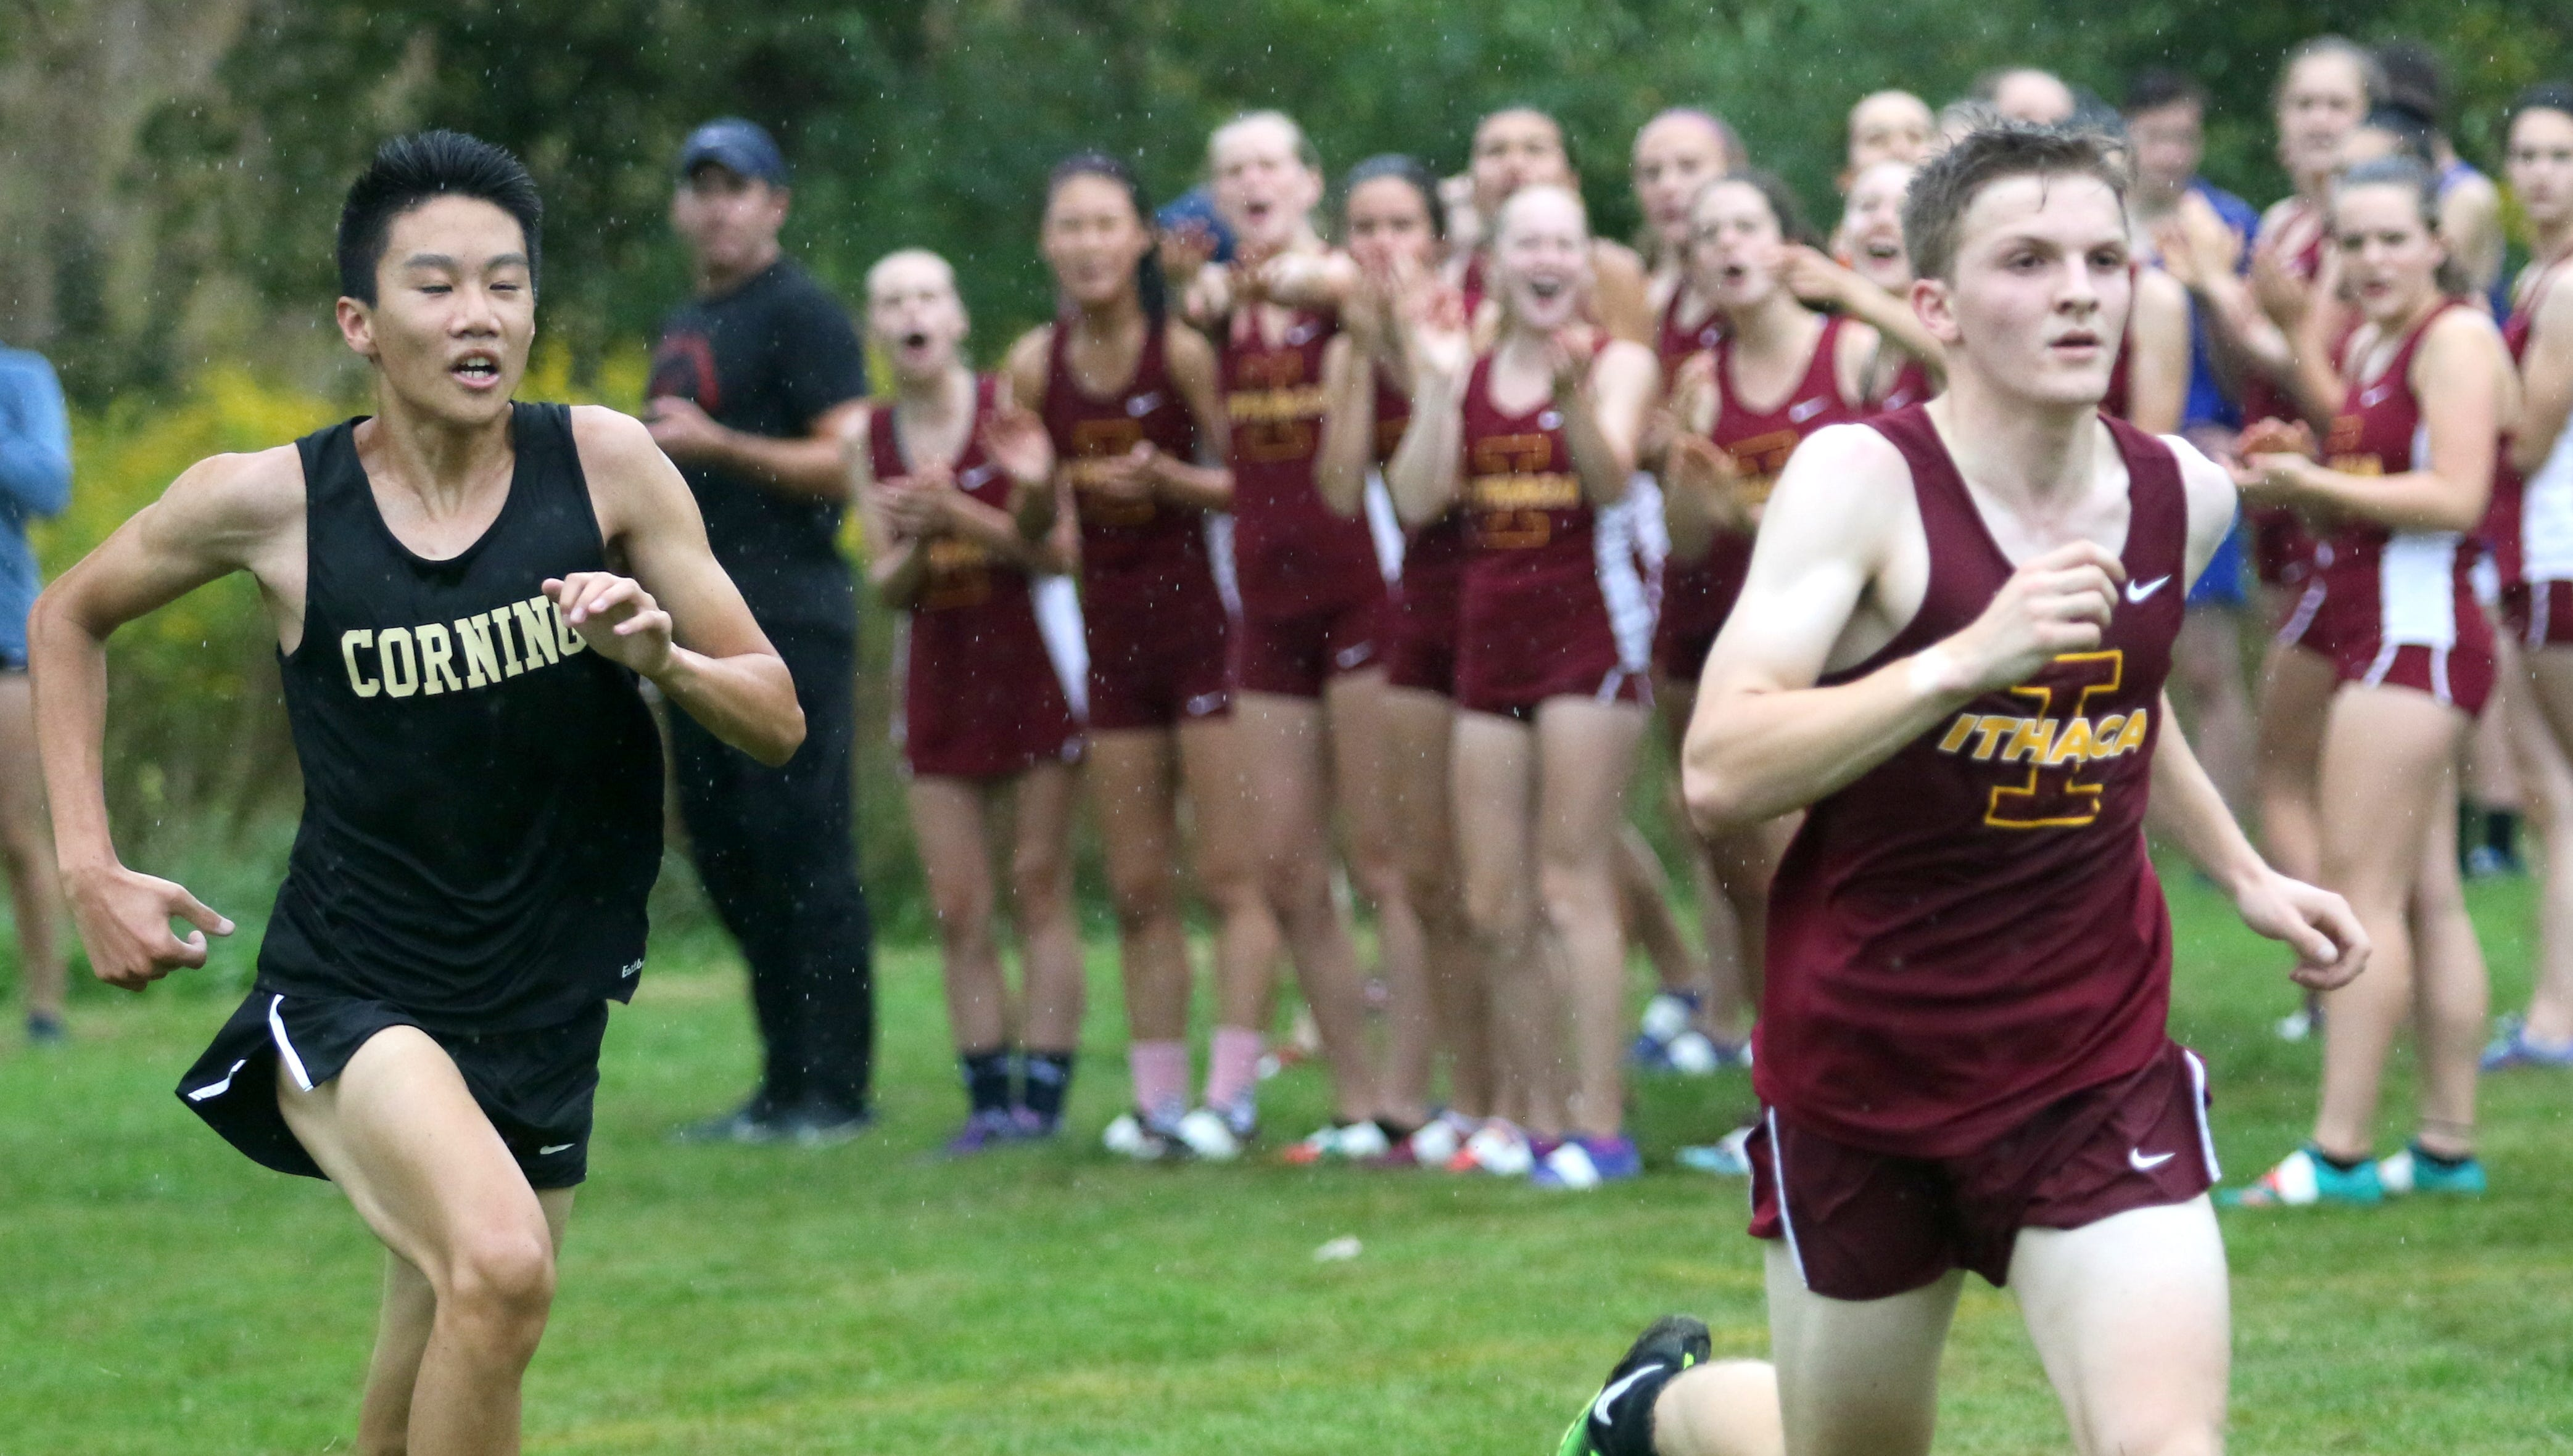 Runners compete in the STAC West cross country championship meet Sept. 17, 2018 at Sperr Memorial Park in Big Flats.